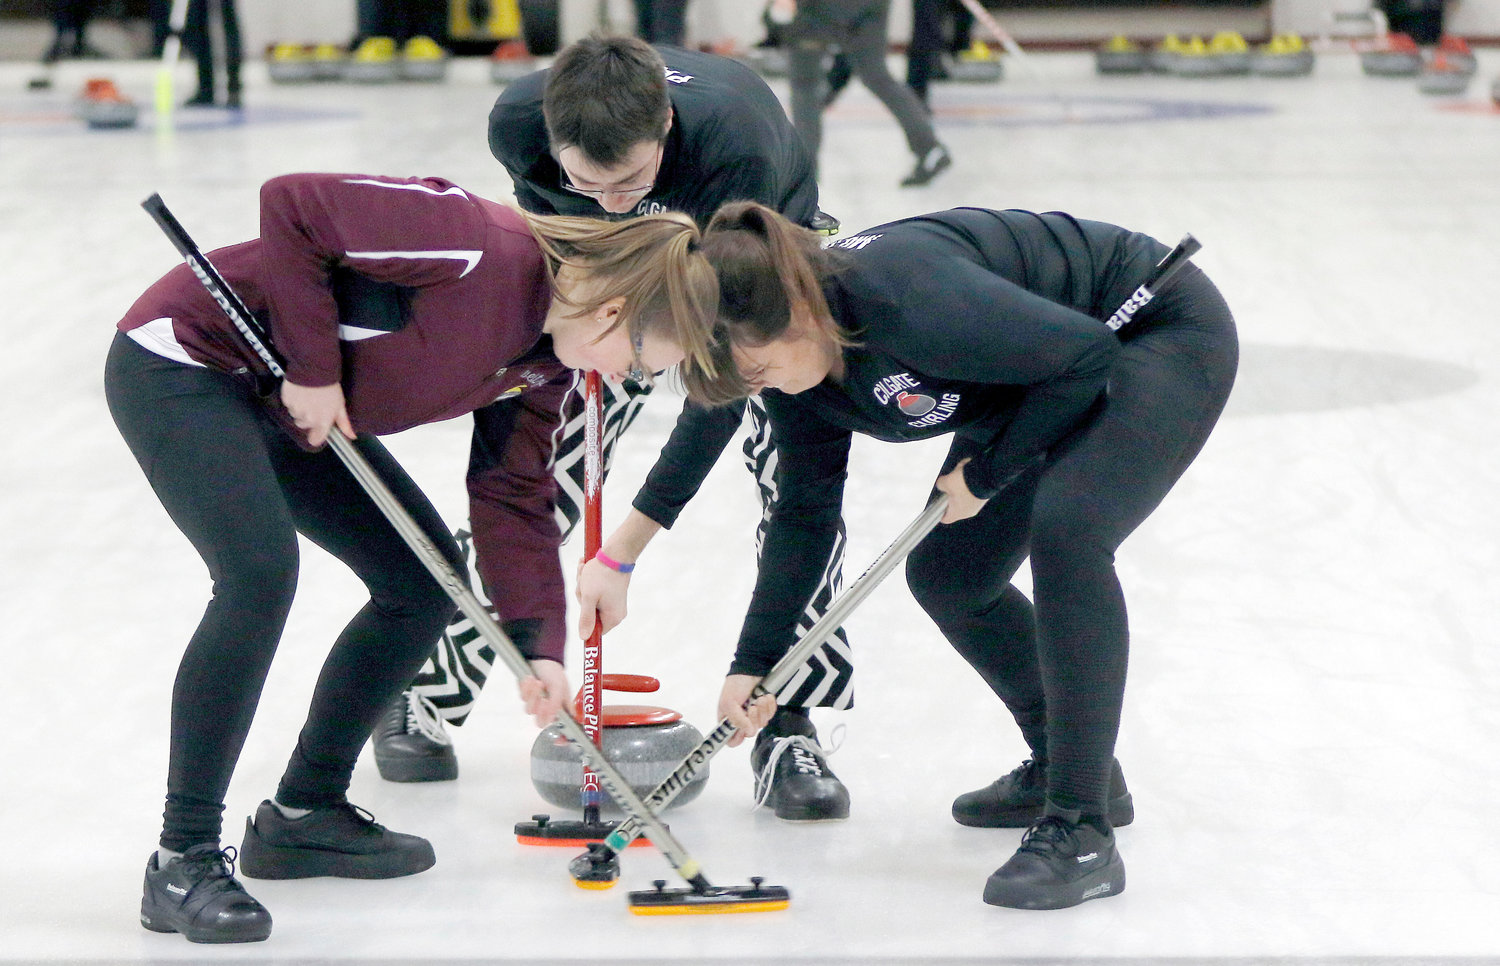 RAIDERS ON THE ICE — Colgate team members sweep ahead of a rock during the college curling national championship on Friday in Wayland, Mass.